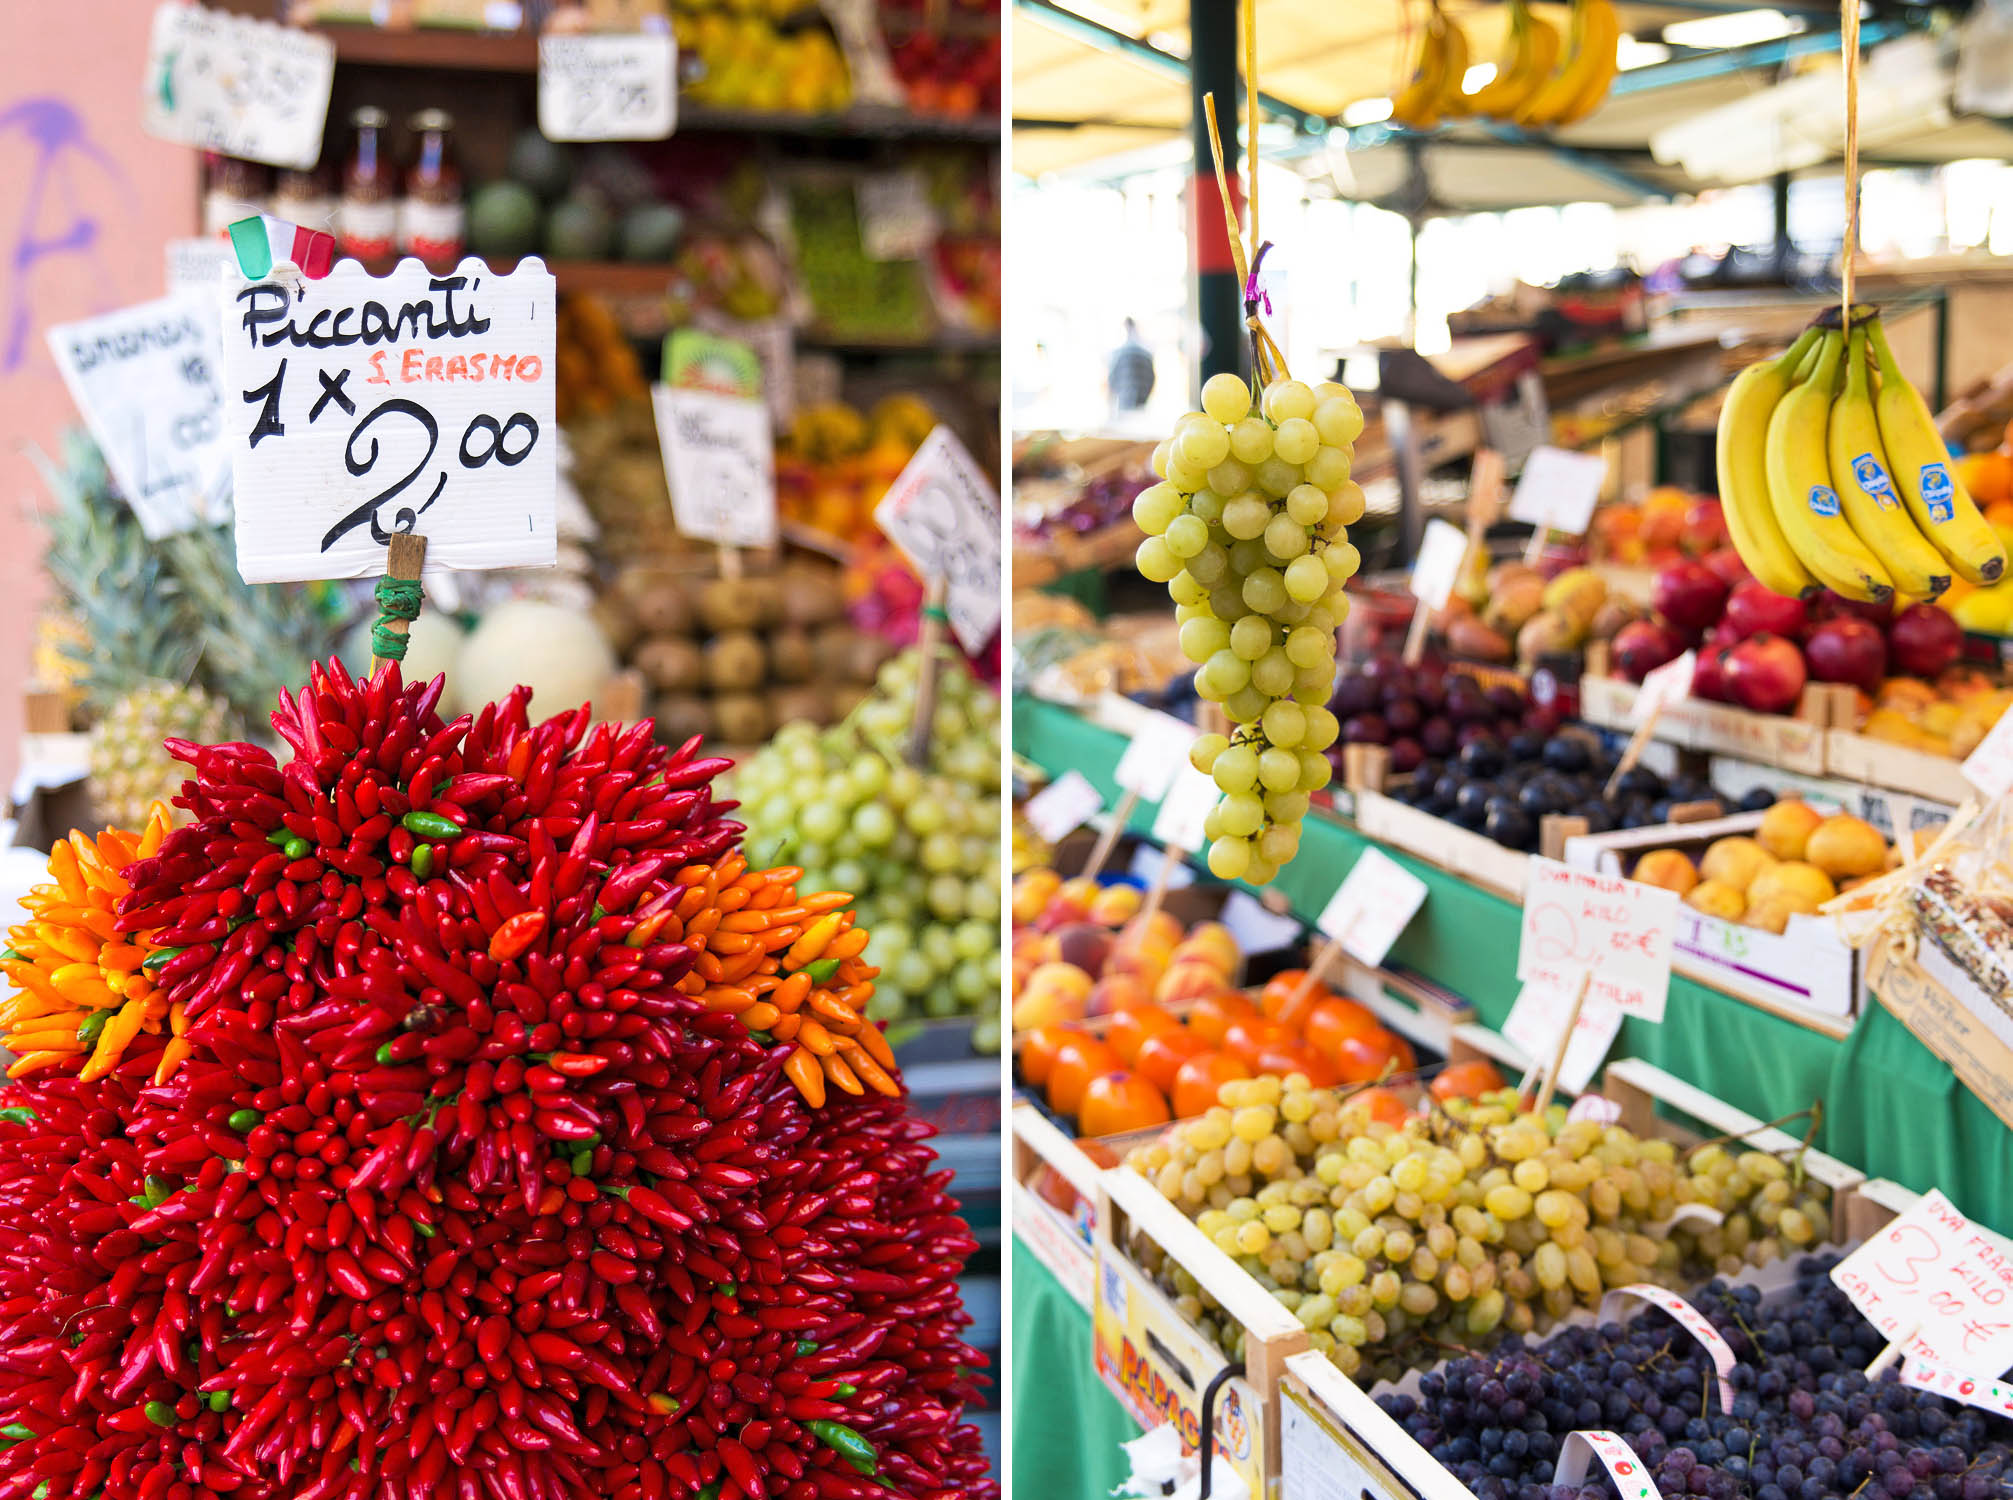 Rialto market in Venice, Italy. Westin Europa and Regina in Venice Personal Food Shopper Tour